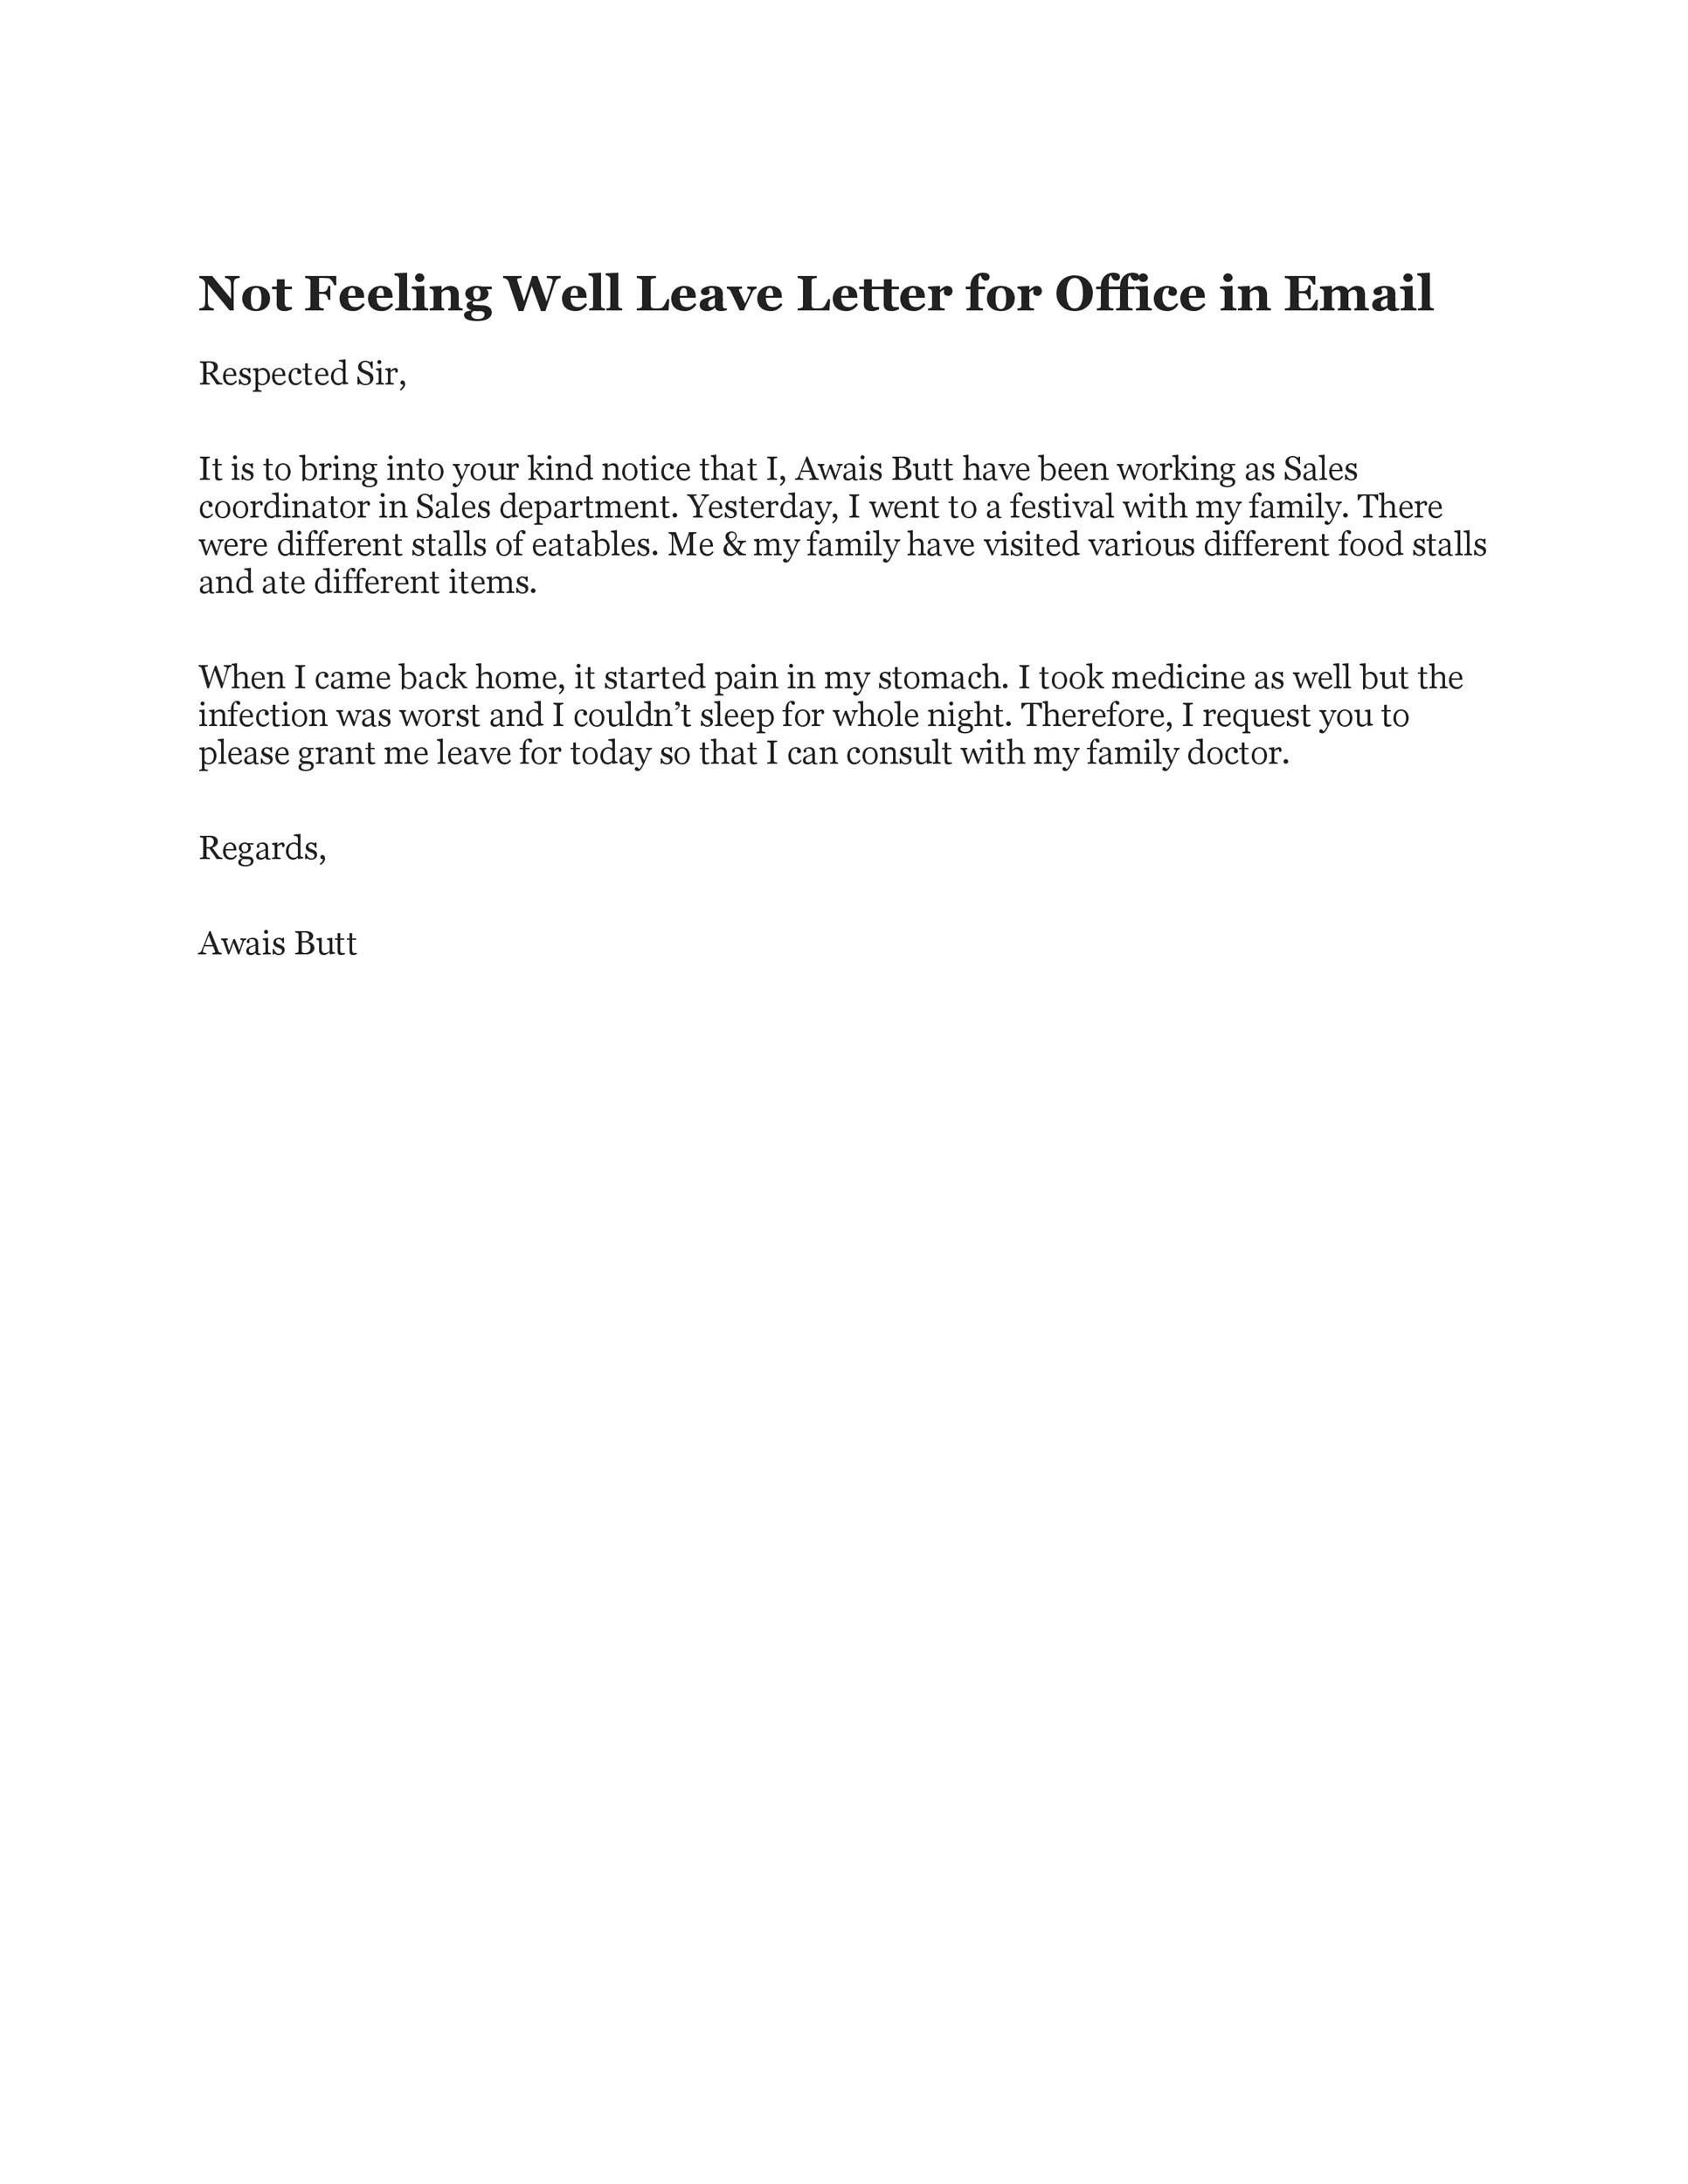 Free sick leave email 49